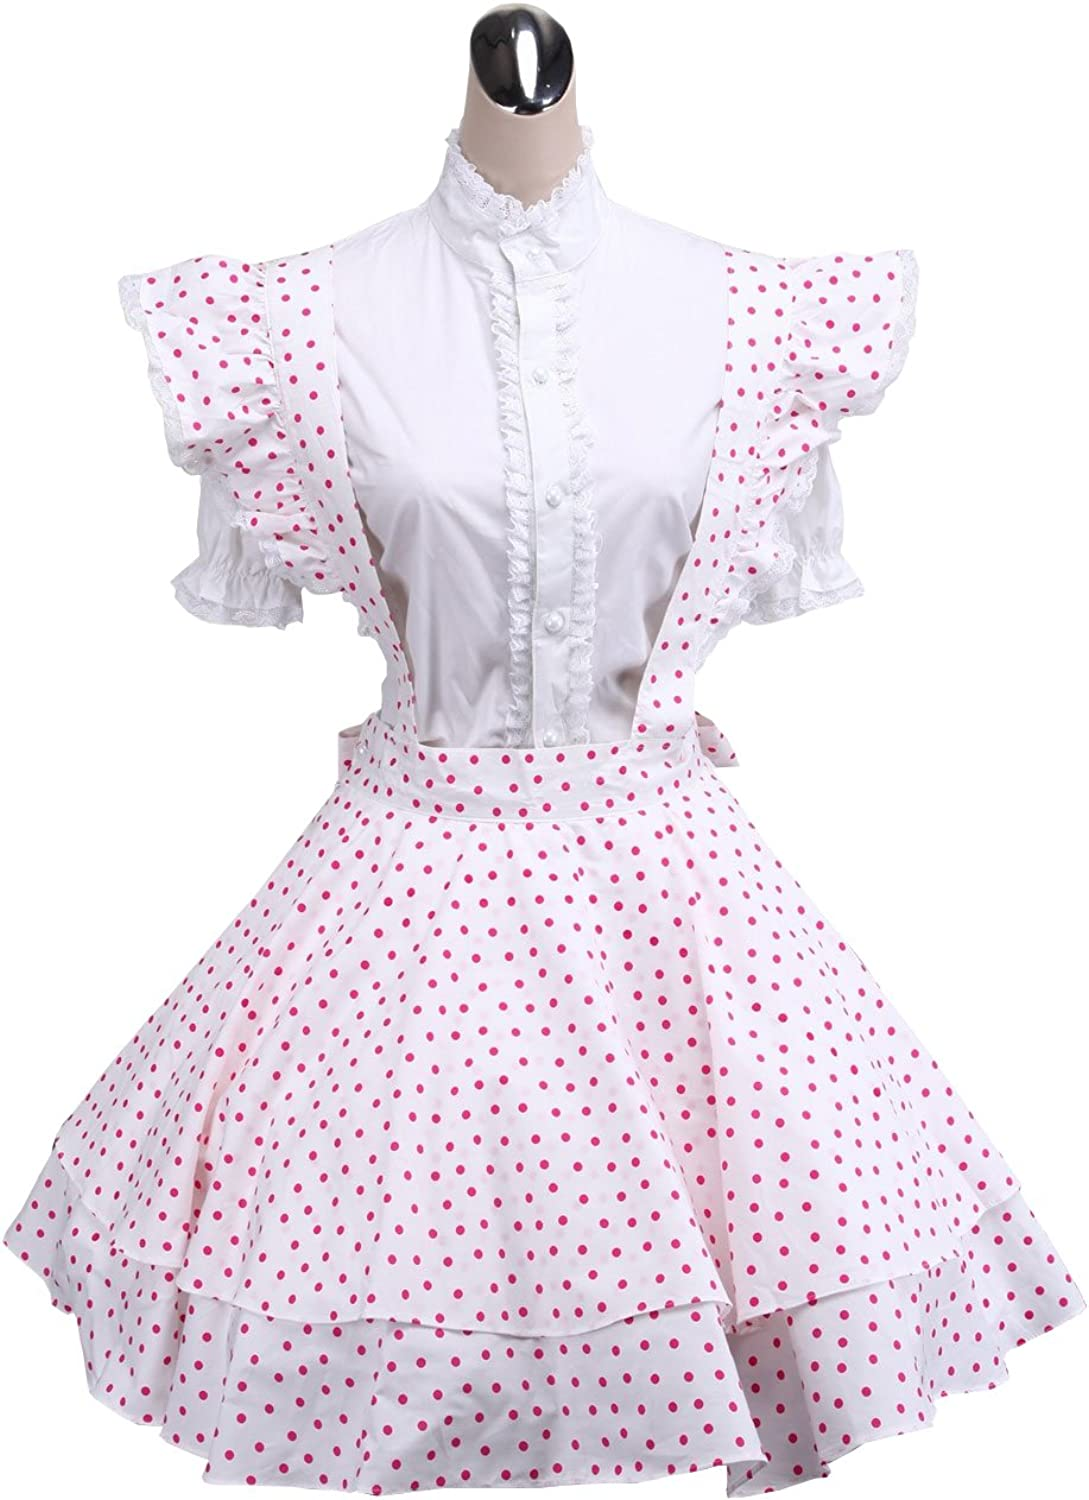 Antaina White Cotton Pink Polka Dot Sweet Victorian Maid Lolita Cosplay Dress